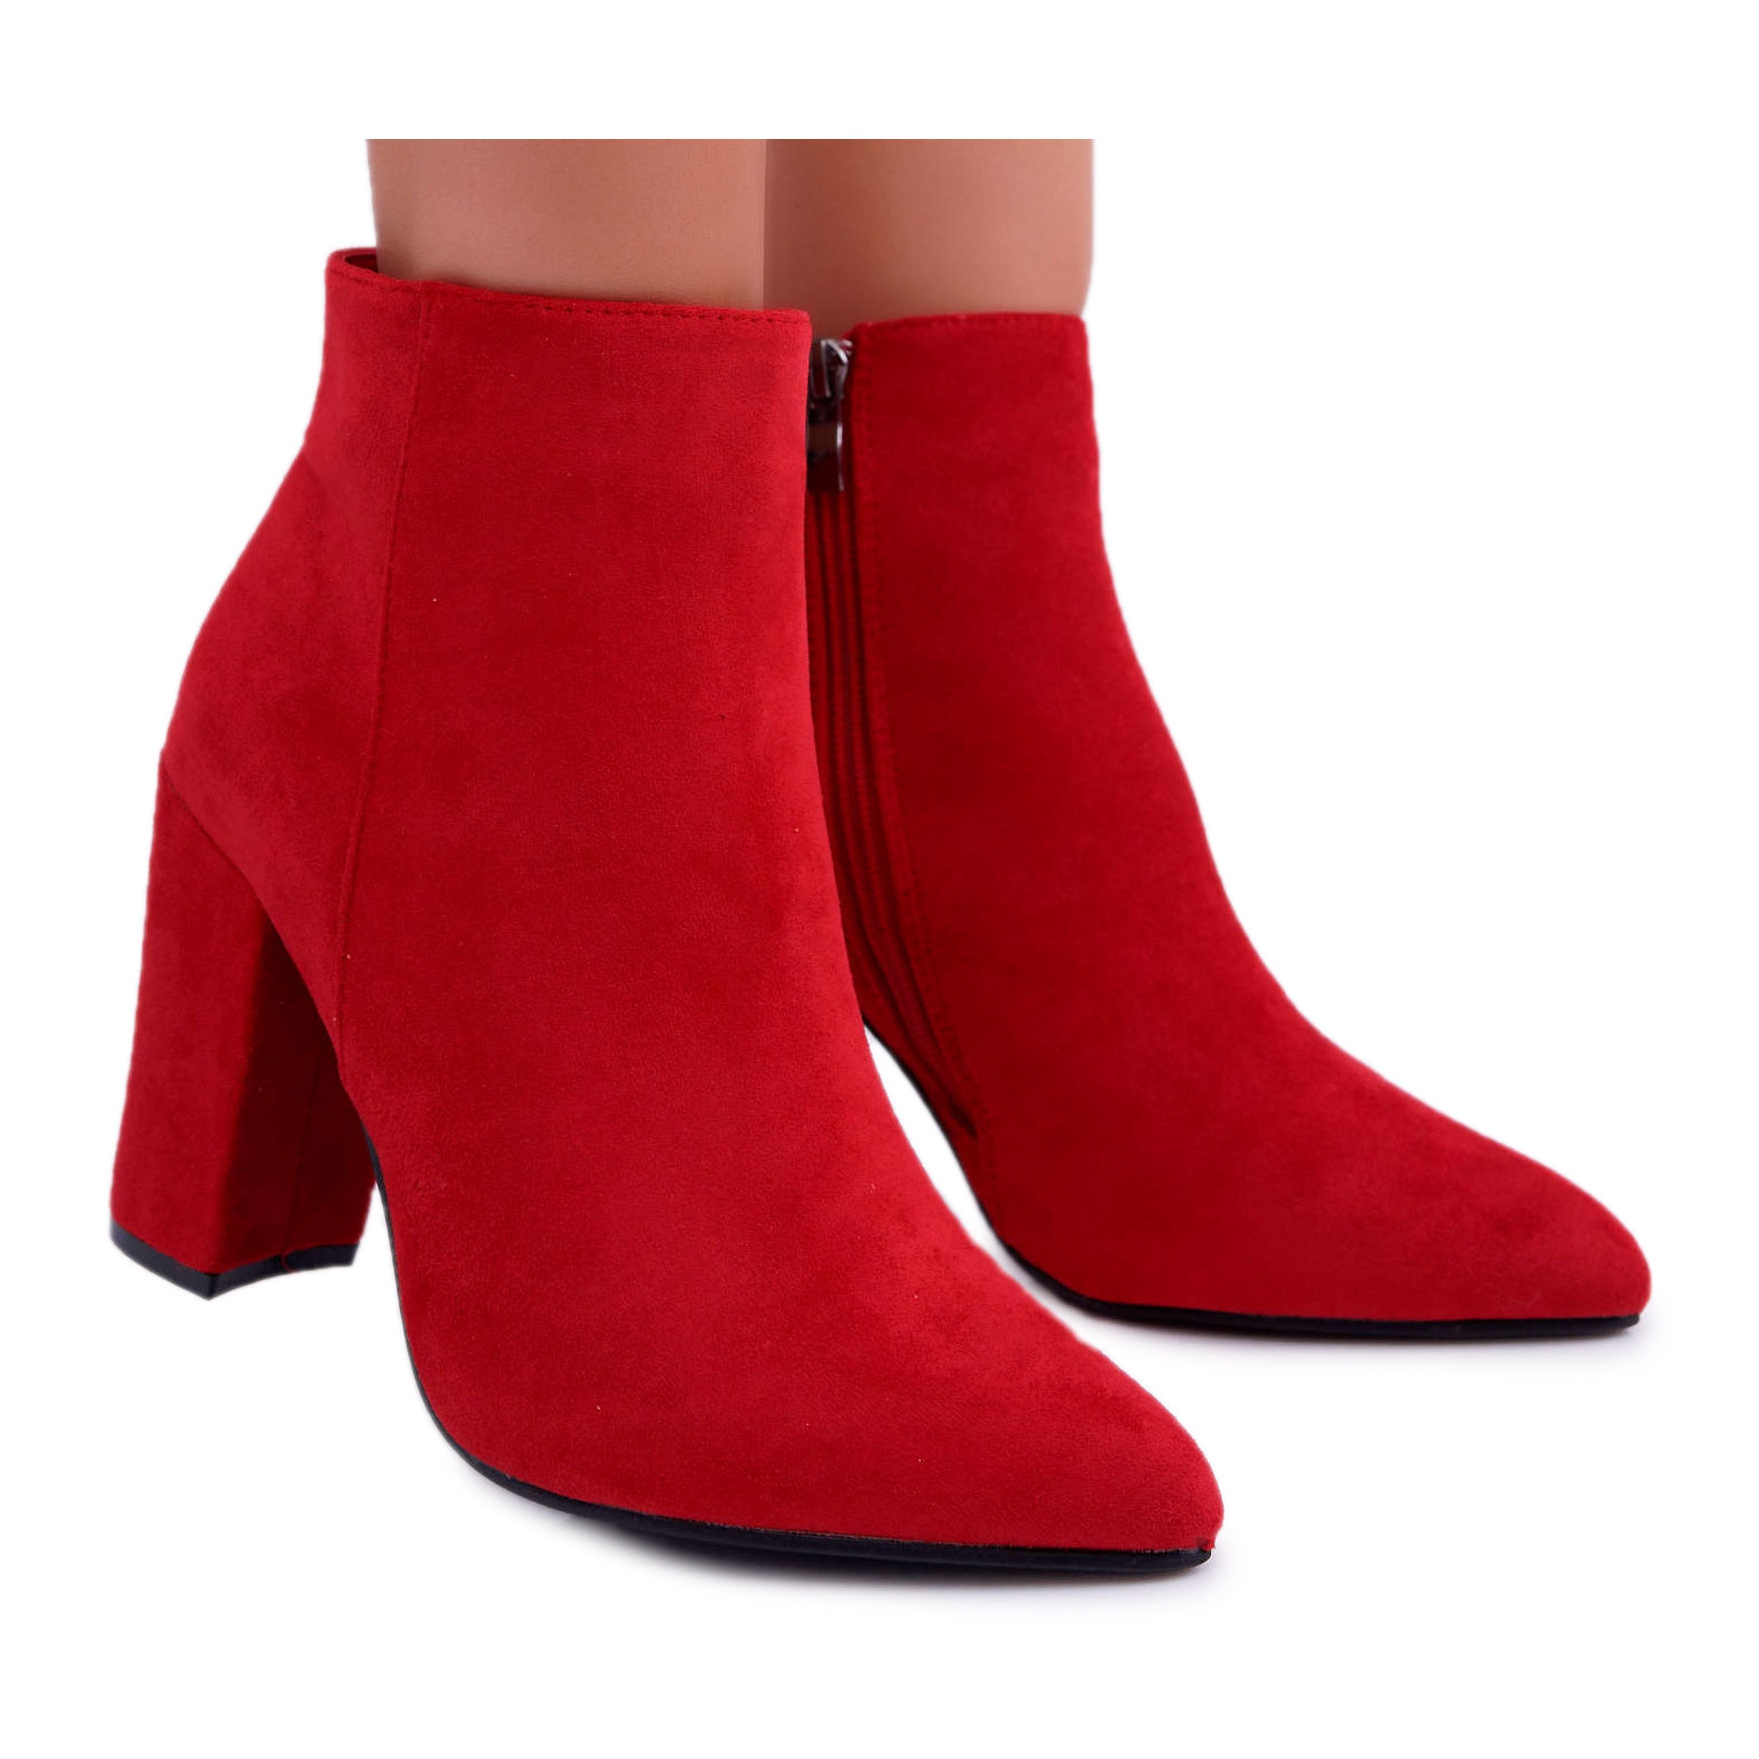 Ankle Boots Suede Red Sharks - ButyModne.pl